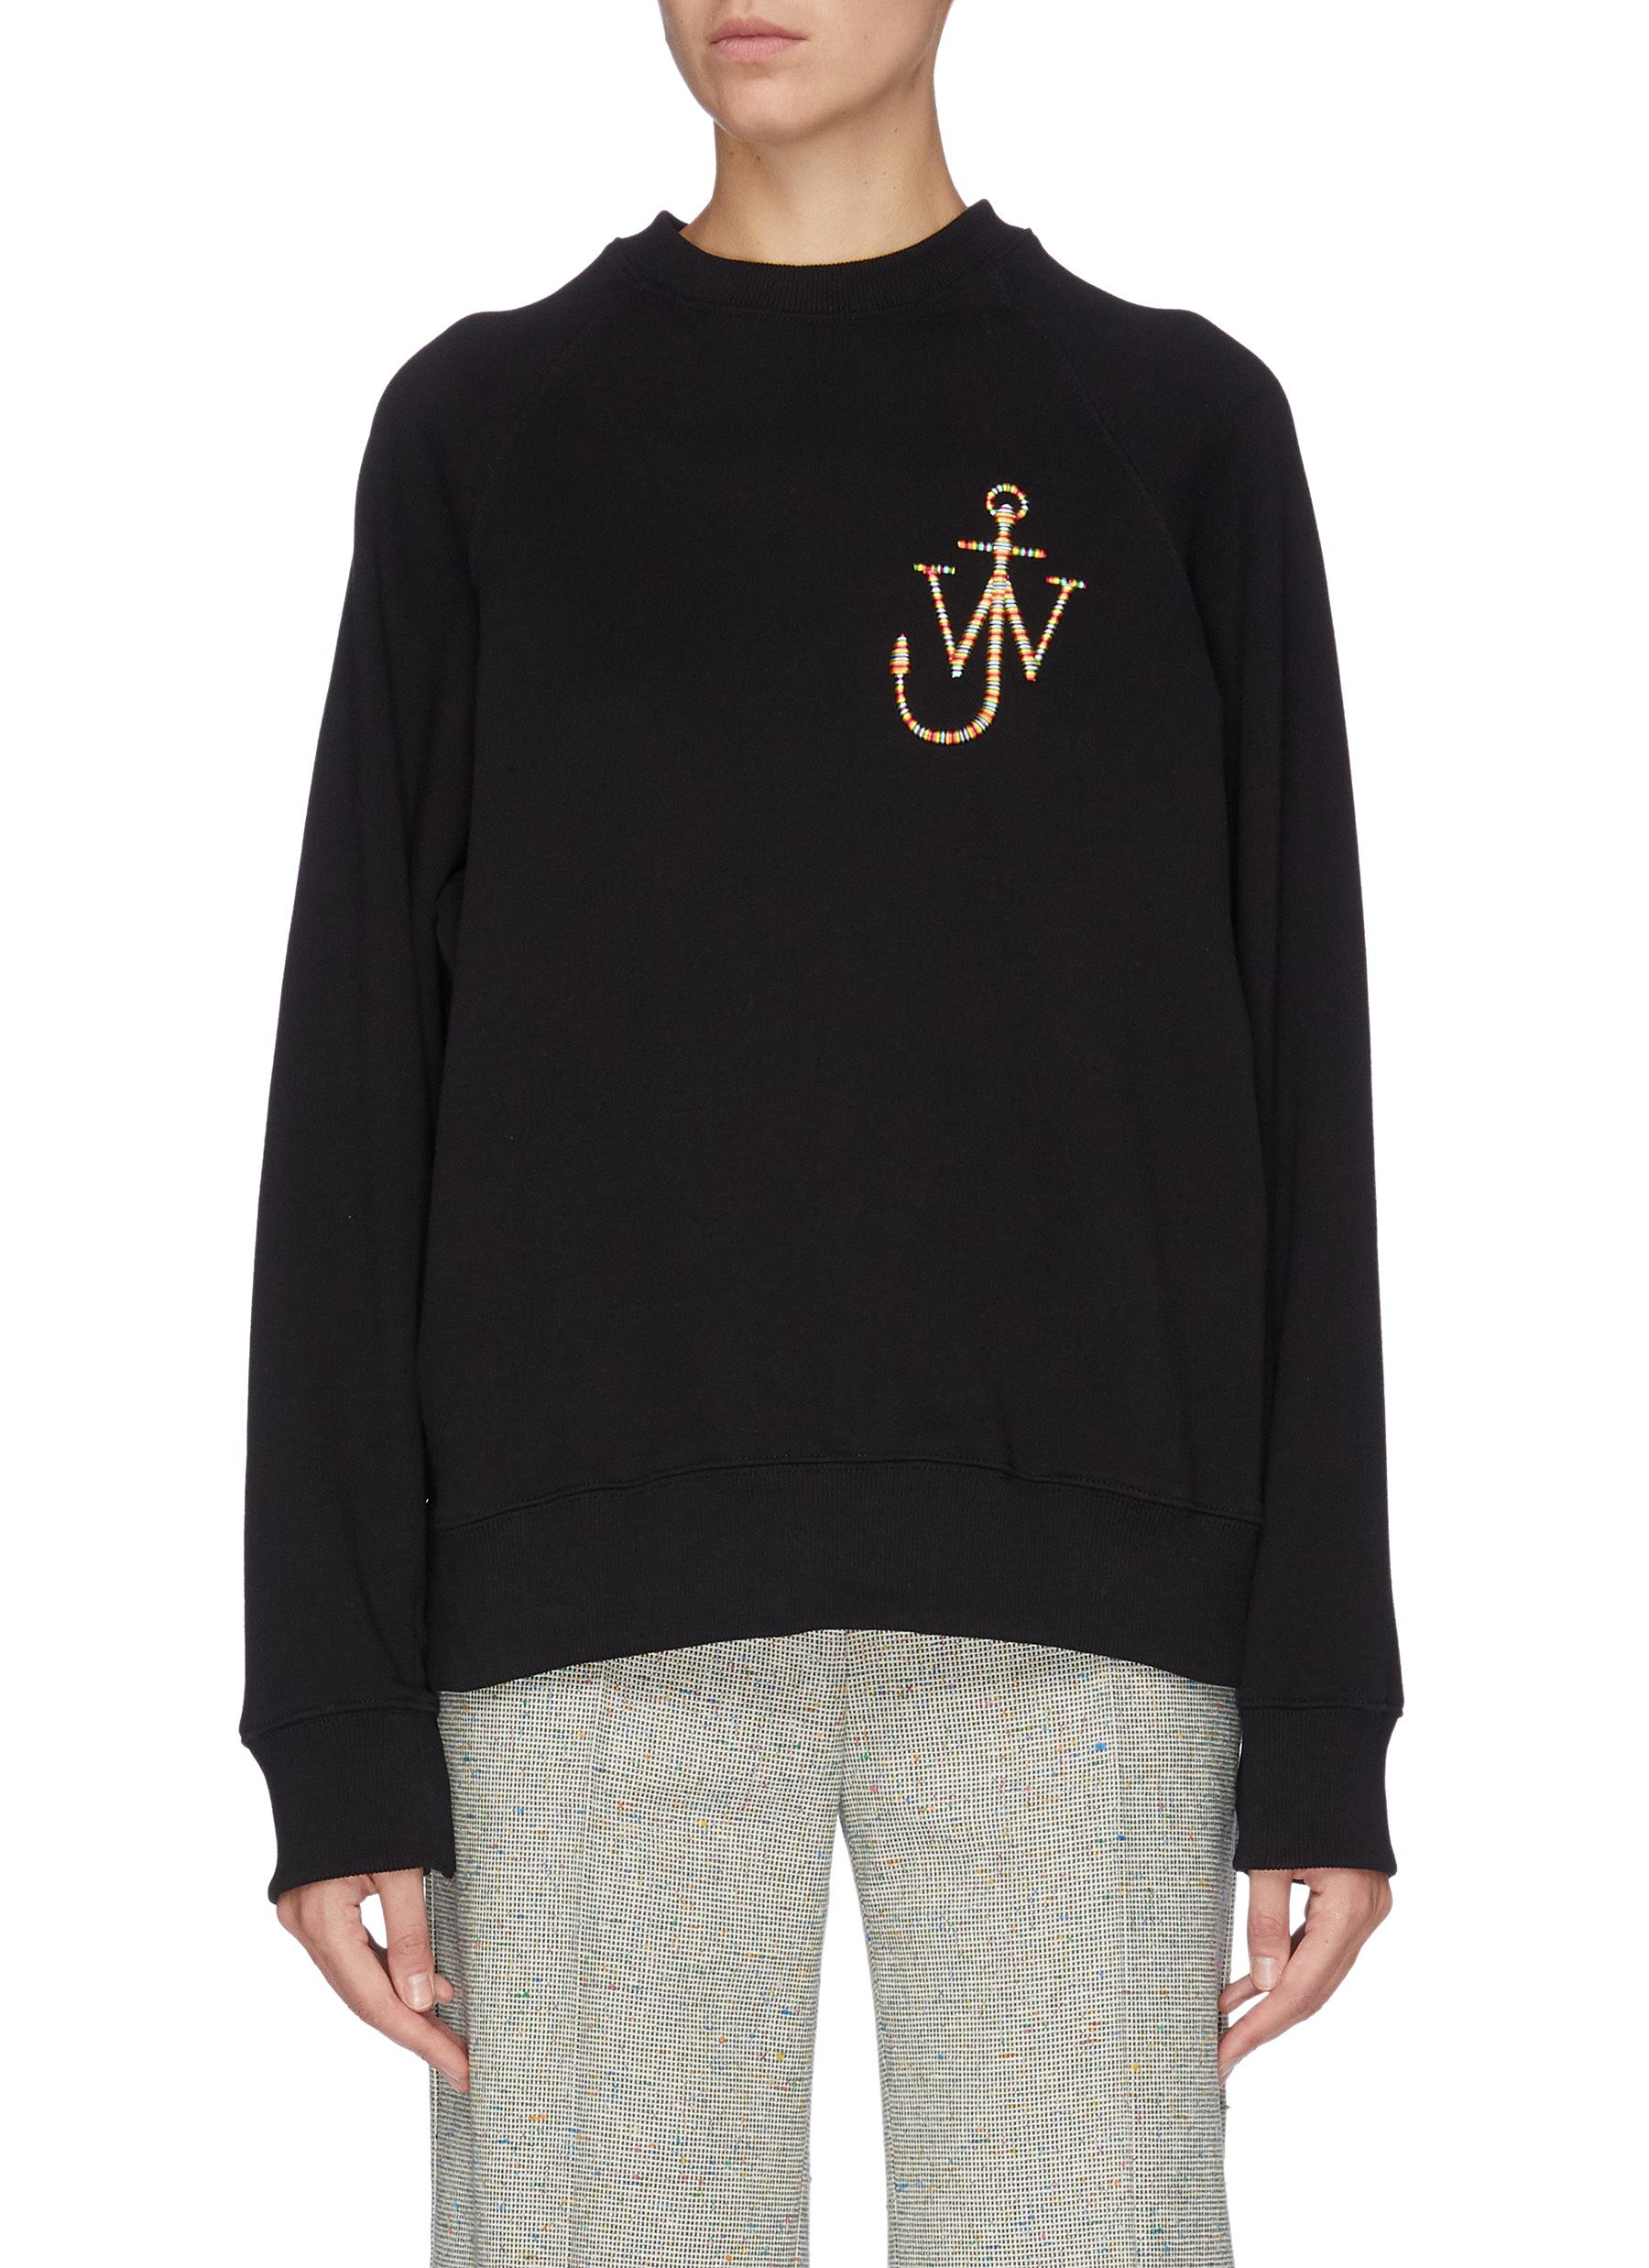 Button sleeve logo embroidered sweatshirt by Jw Anderson